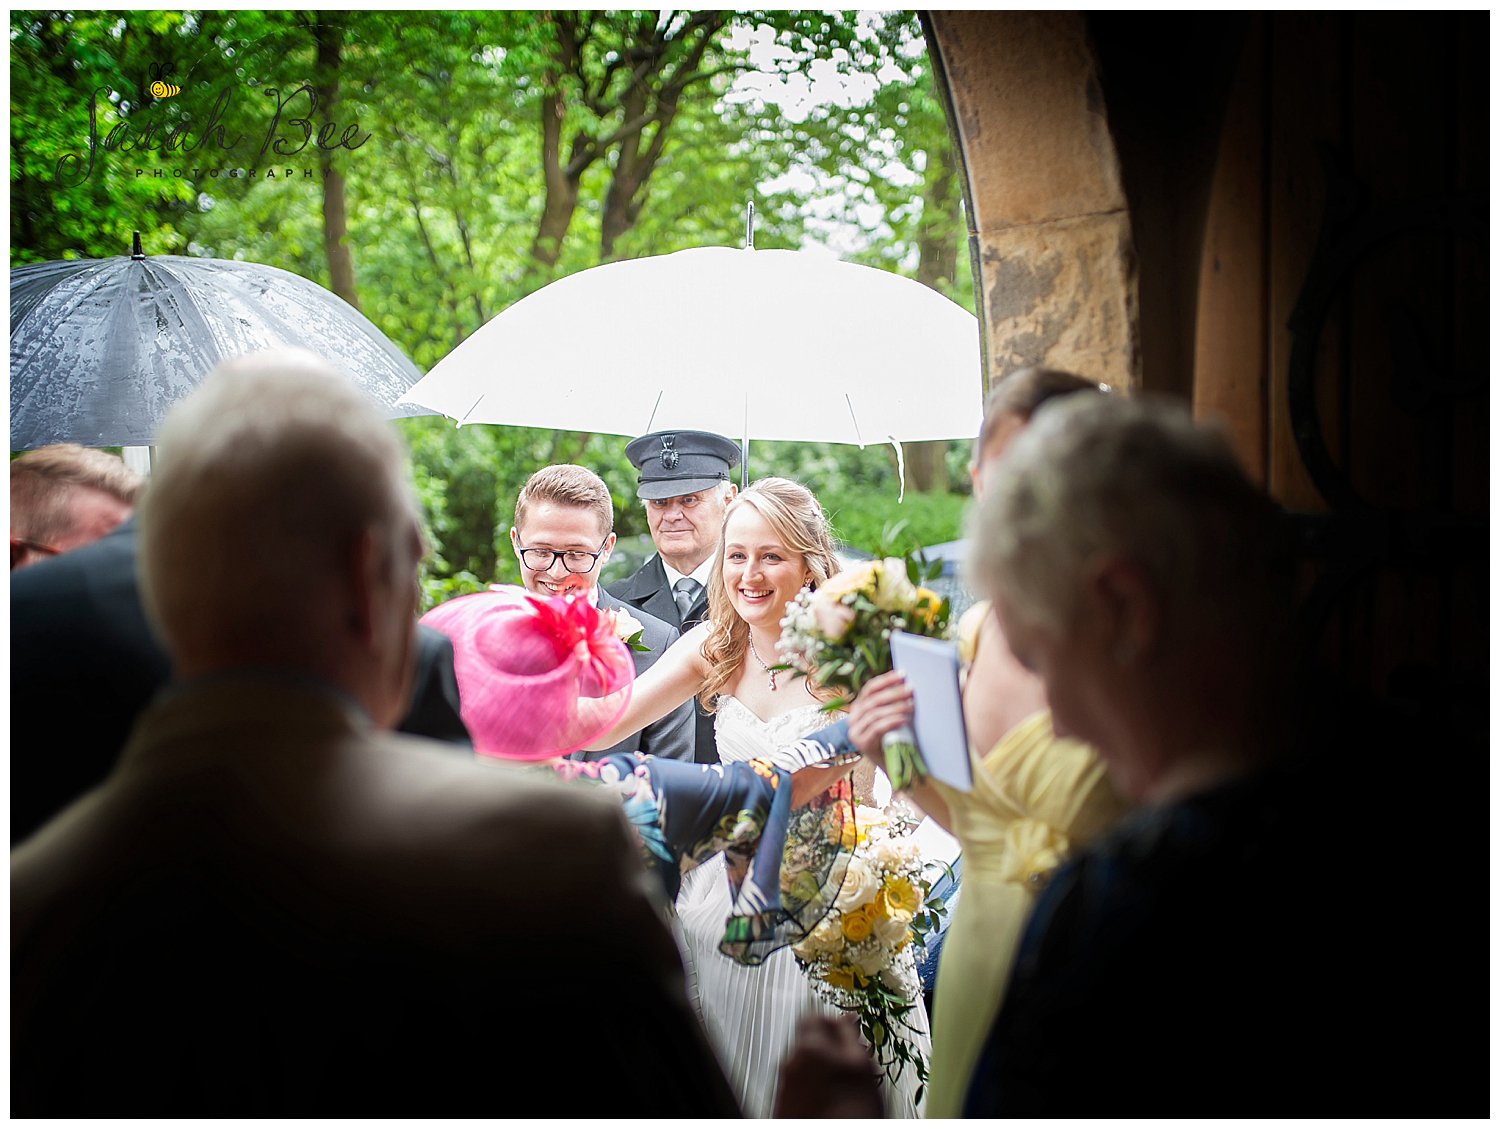 wedding photography with sarah bee photography, Peruga woodheys glossop, documentory photography wedding photographer_0213.jpg